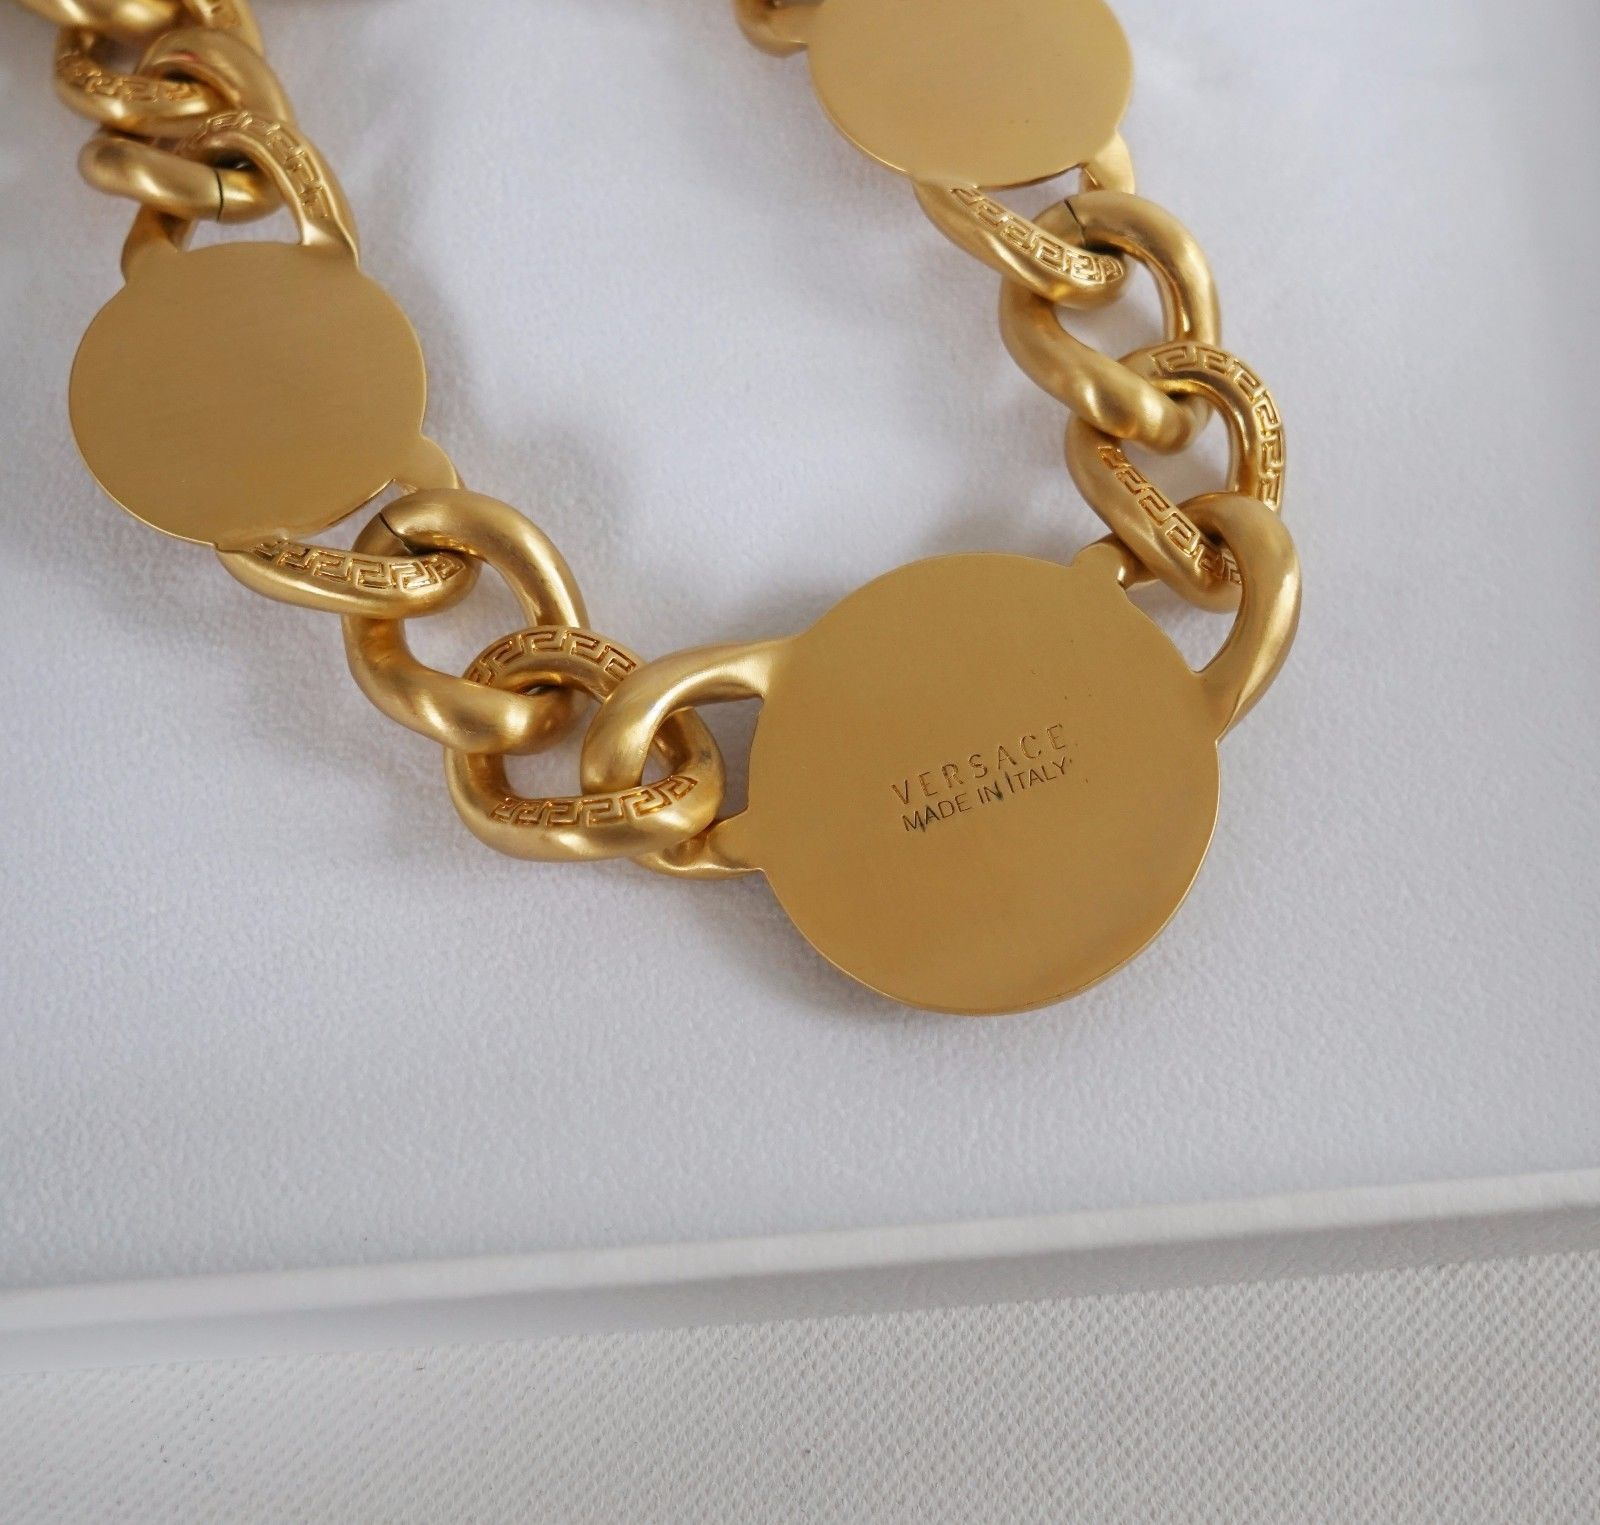 Versace Iconic 3 Medusa medallions chain necklace_5